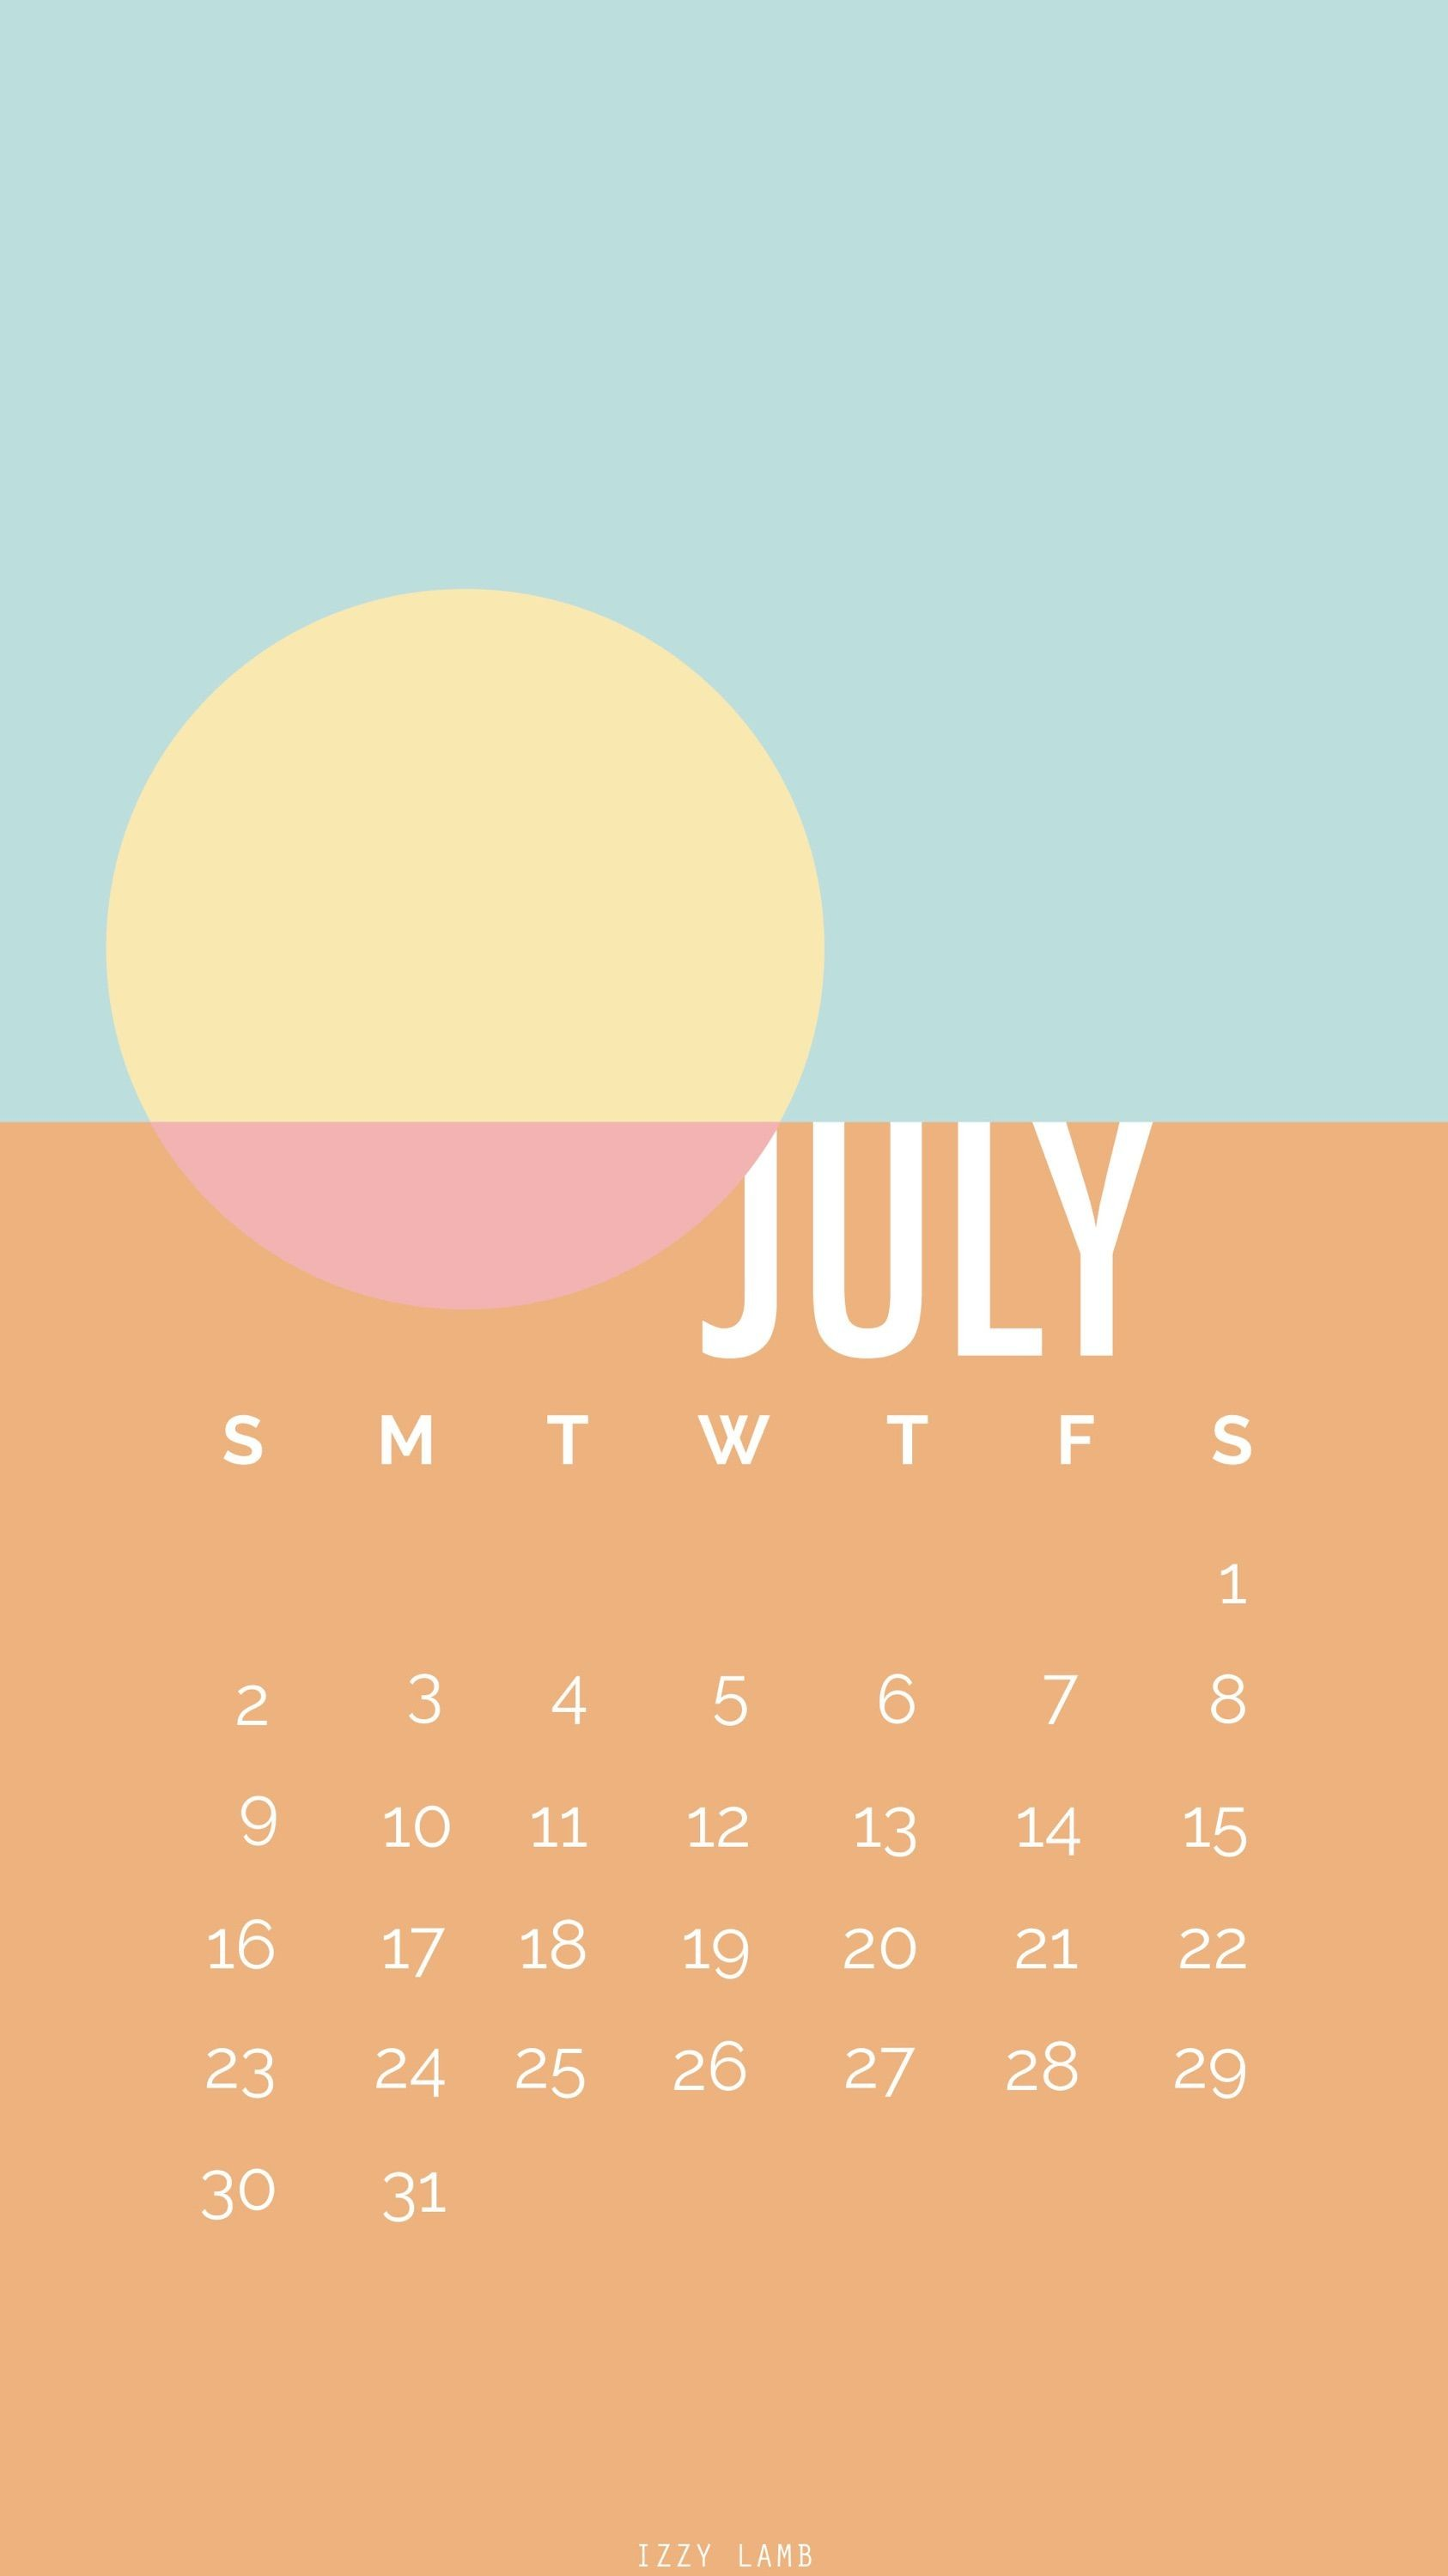 Res: 1686x3000, July 2017 Calender Iphone Wallpaper #july #calender #iphone #wallpaper  #iphonebackground #iphonewallpaper